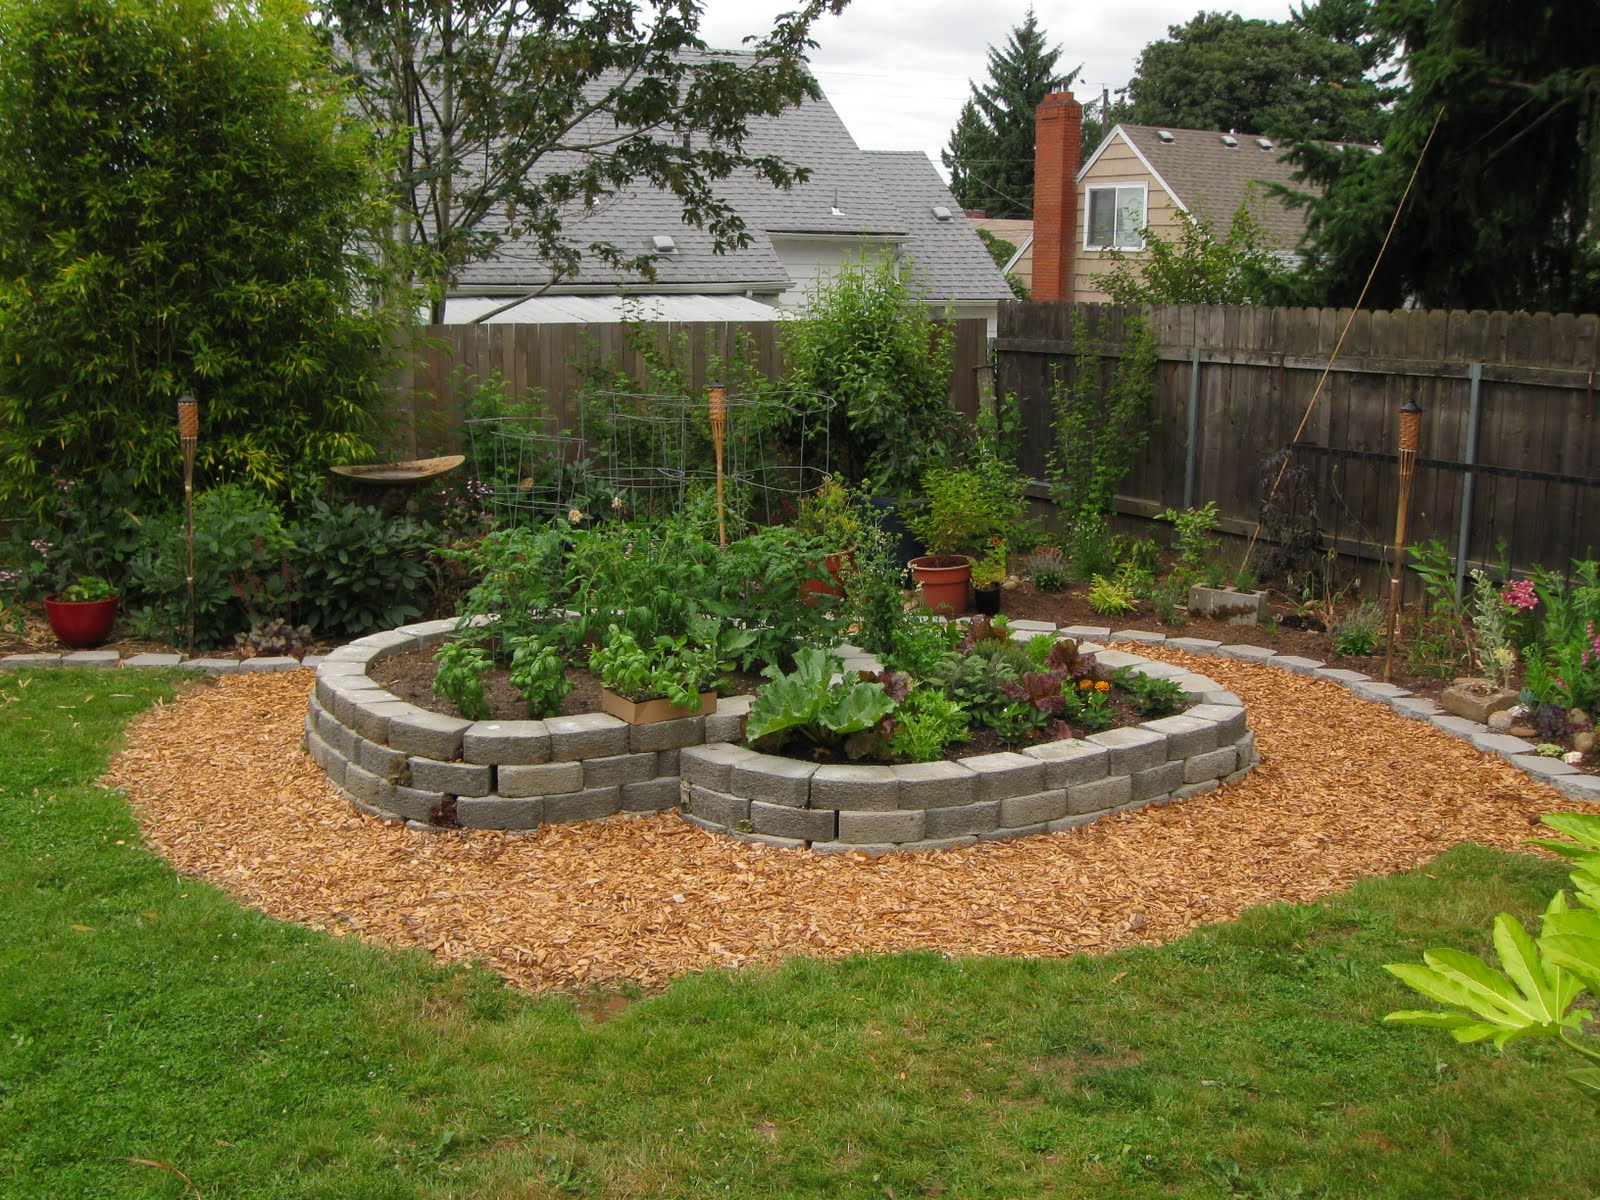 Simple landscaping ideas with low maintenance design and for Garden design ideas without grass low maintenance